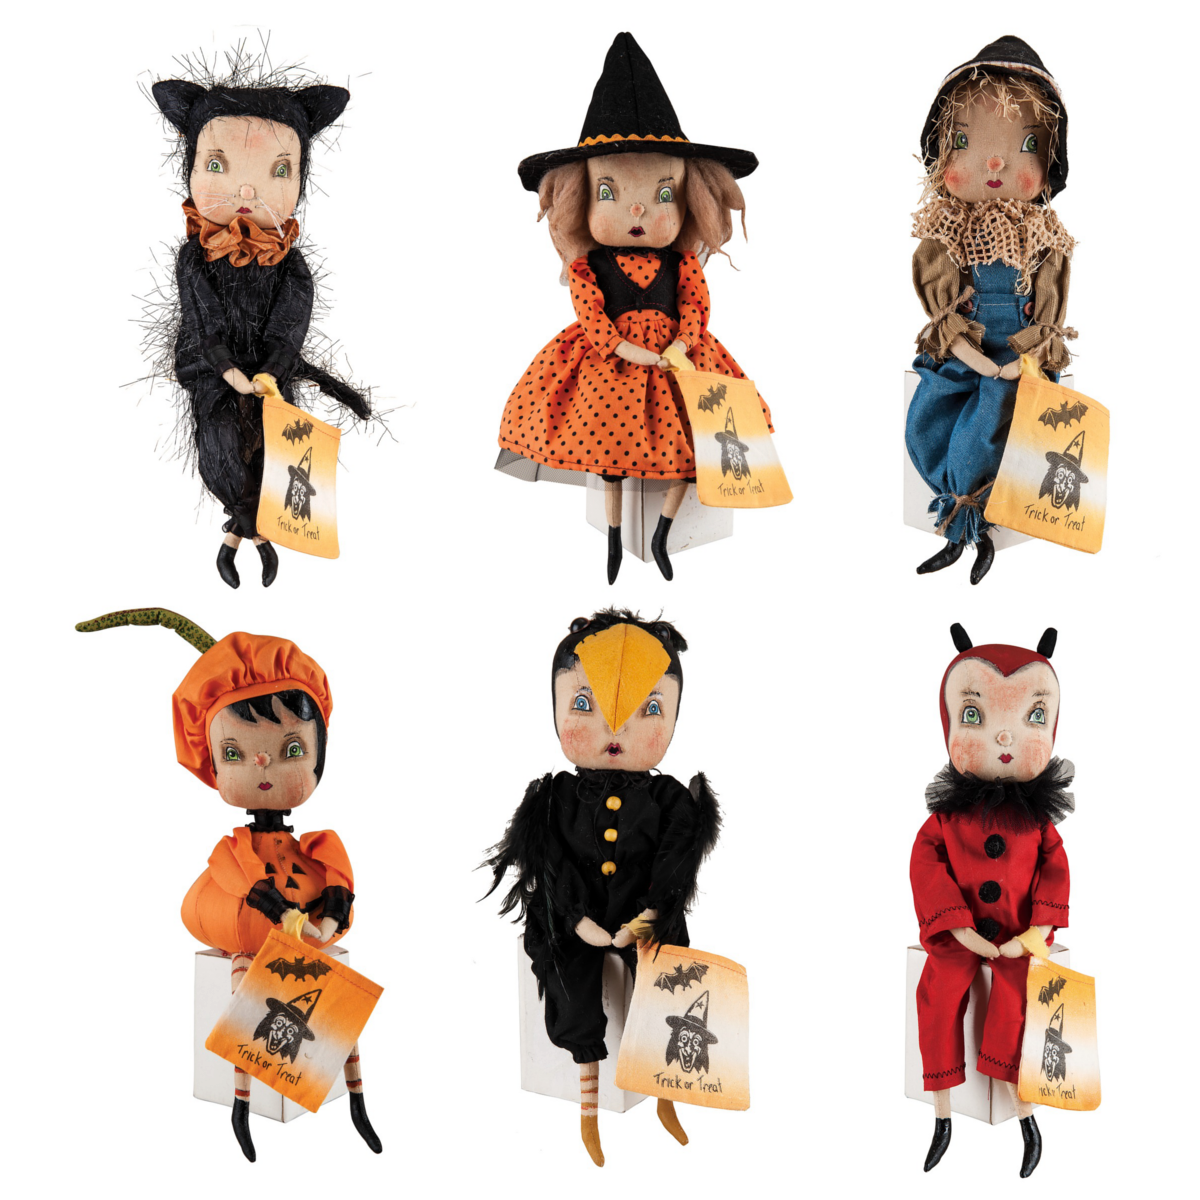 Joe Spencer Trick or Treater Halloween Dolls - Set of 6